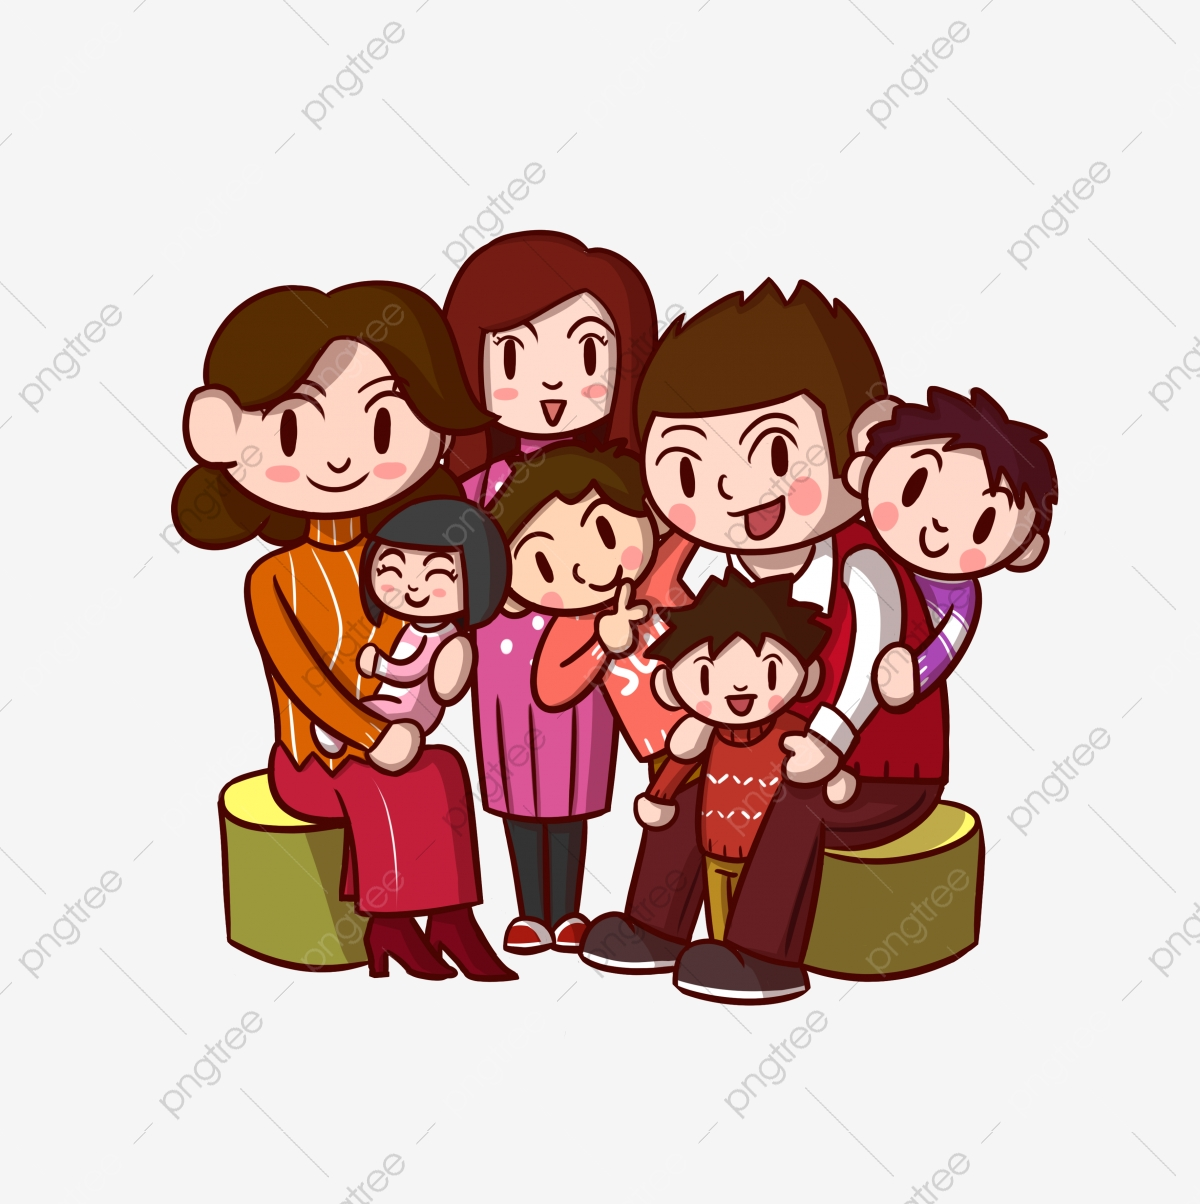 3d Cartoon Family Portrait Cartoon Clipart Family Clipart Family Portrait Png Transparent Clipart Image And Psd File For Free Download